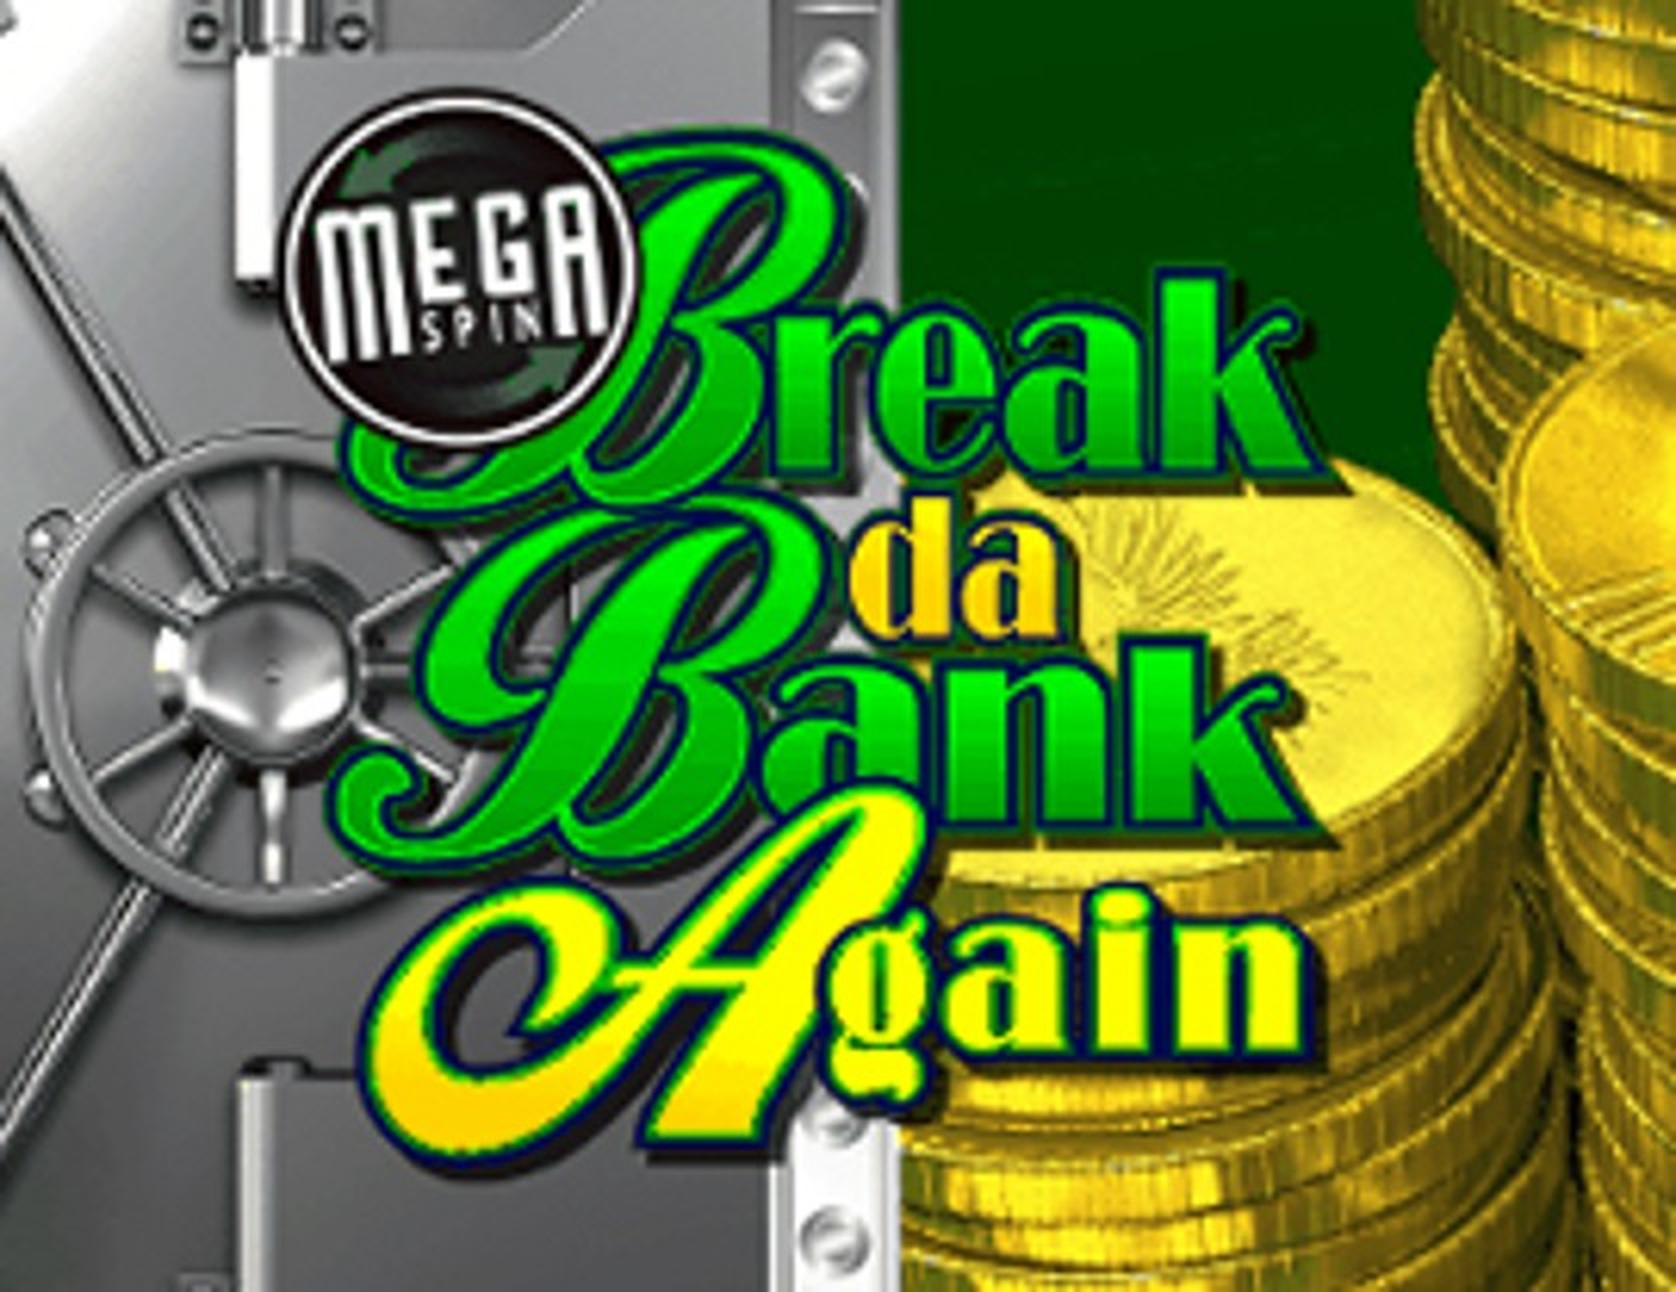 The Mega Spins Break Da Bank Again Online Slot Demo Game by Microgaming